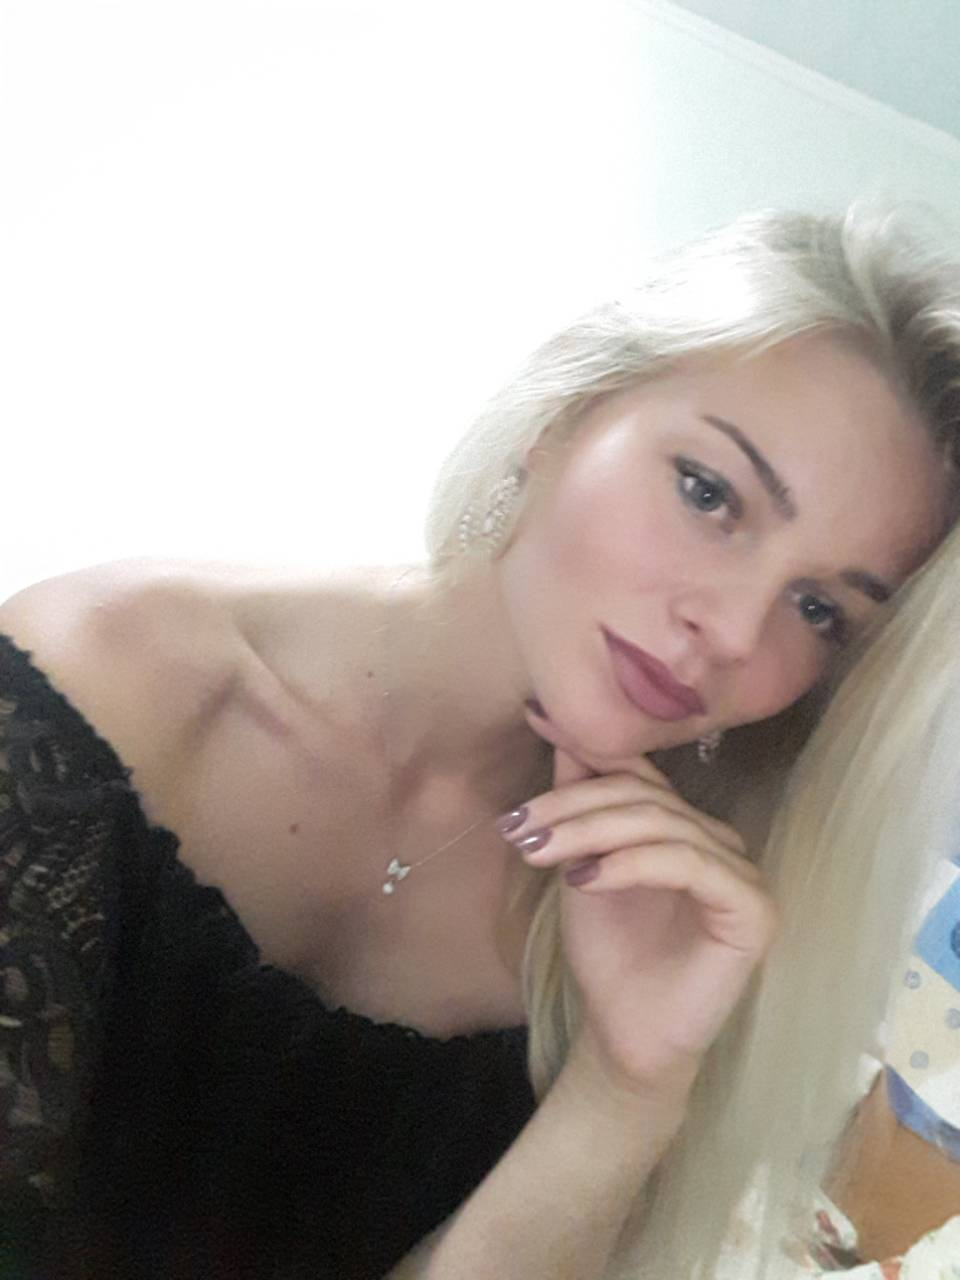 Aleksandra Ukraine, Dnepropetrovsk Age: 20 years old